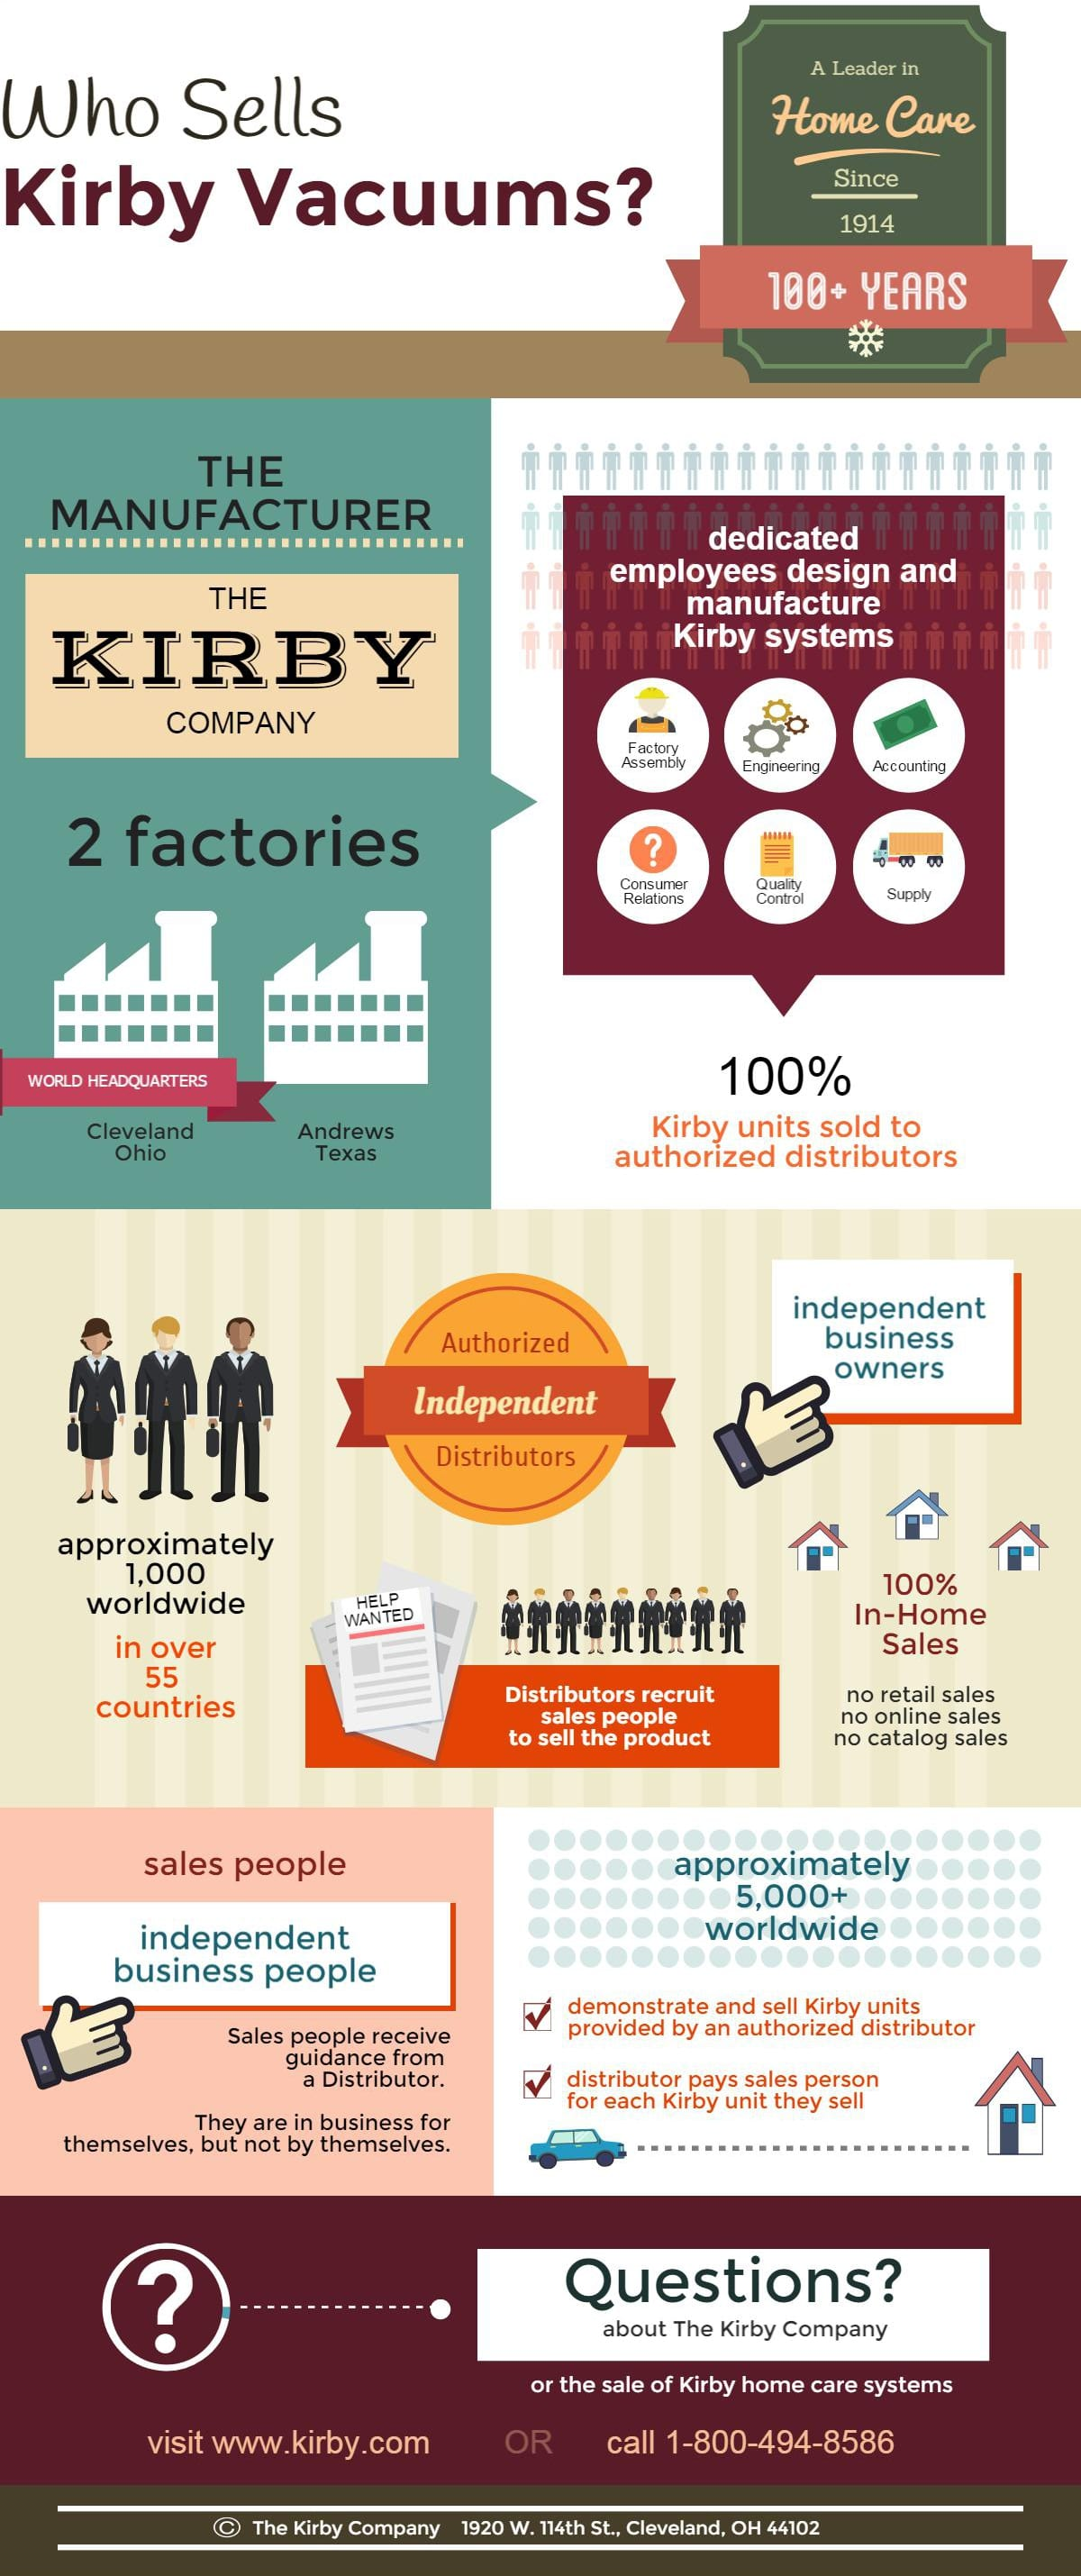 Infographic Kirby vacuums are sold by independent sales people